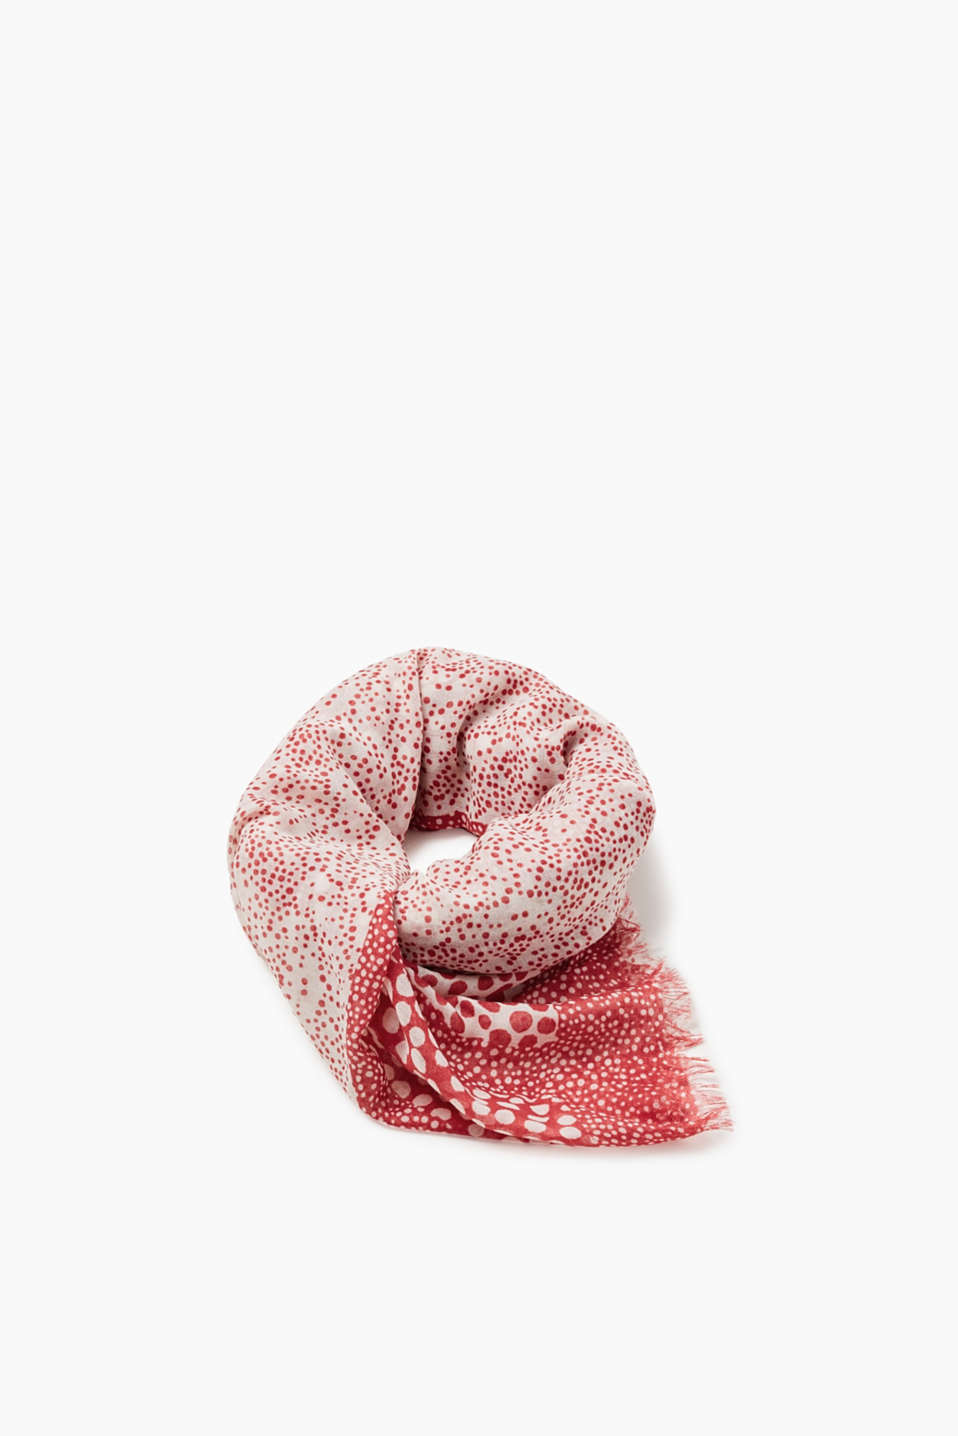 Whether indoors or outdoors – this lightweight woven scarf impresses with its polka dot pattern.